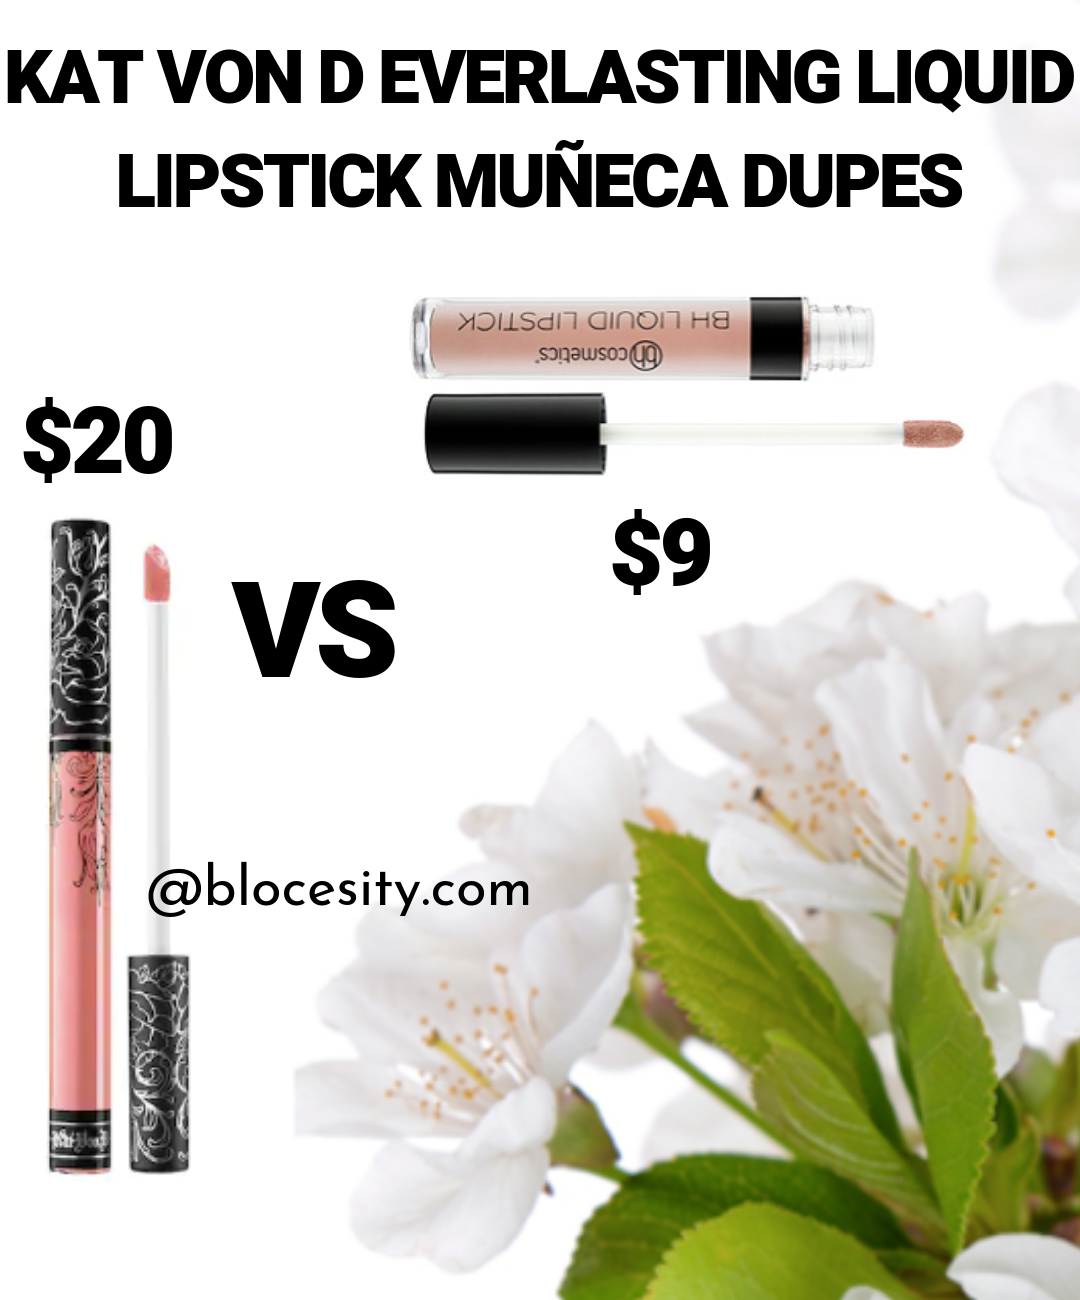 Everlasting Liquid Lipstick Muneca Dupe 4 of 4